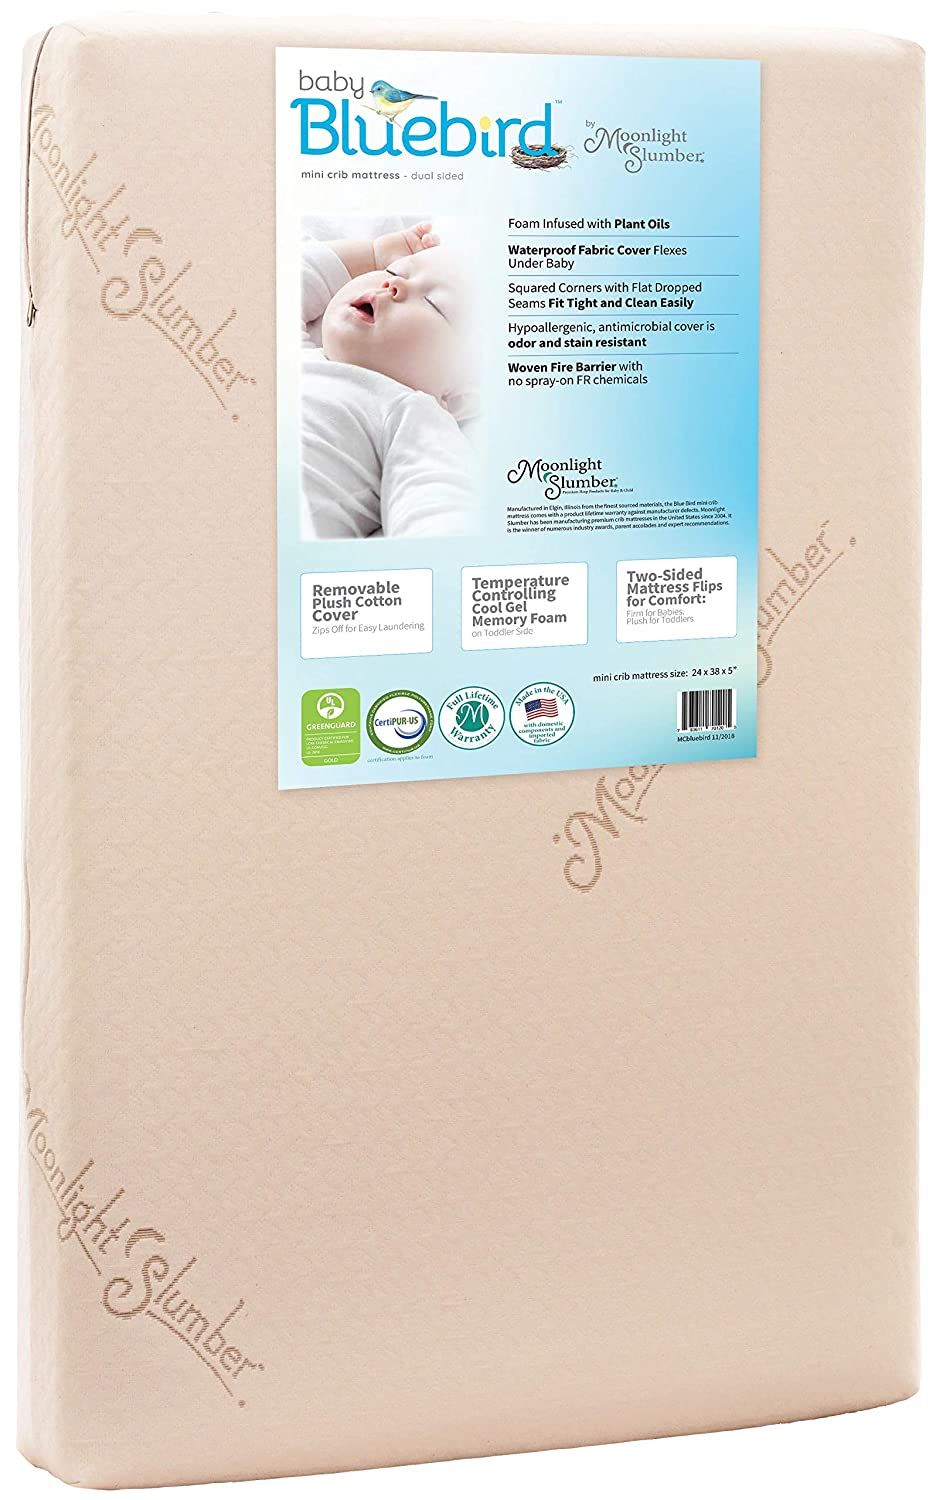 Moonlight Slumber Mini Crib Mattress 5  Dual Firmness  Baby blueebird Waterproof Portable Crib & Toddler Bed Mattress   Cool Gel Memory Foam + Removable Plush Cotton Cover. Hand Made in USA (38x24x5 )